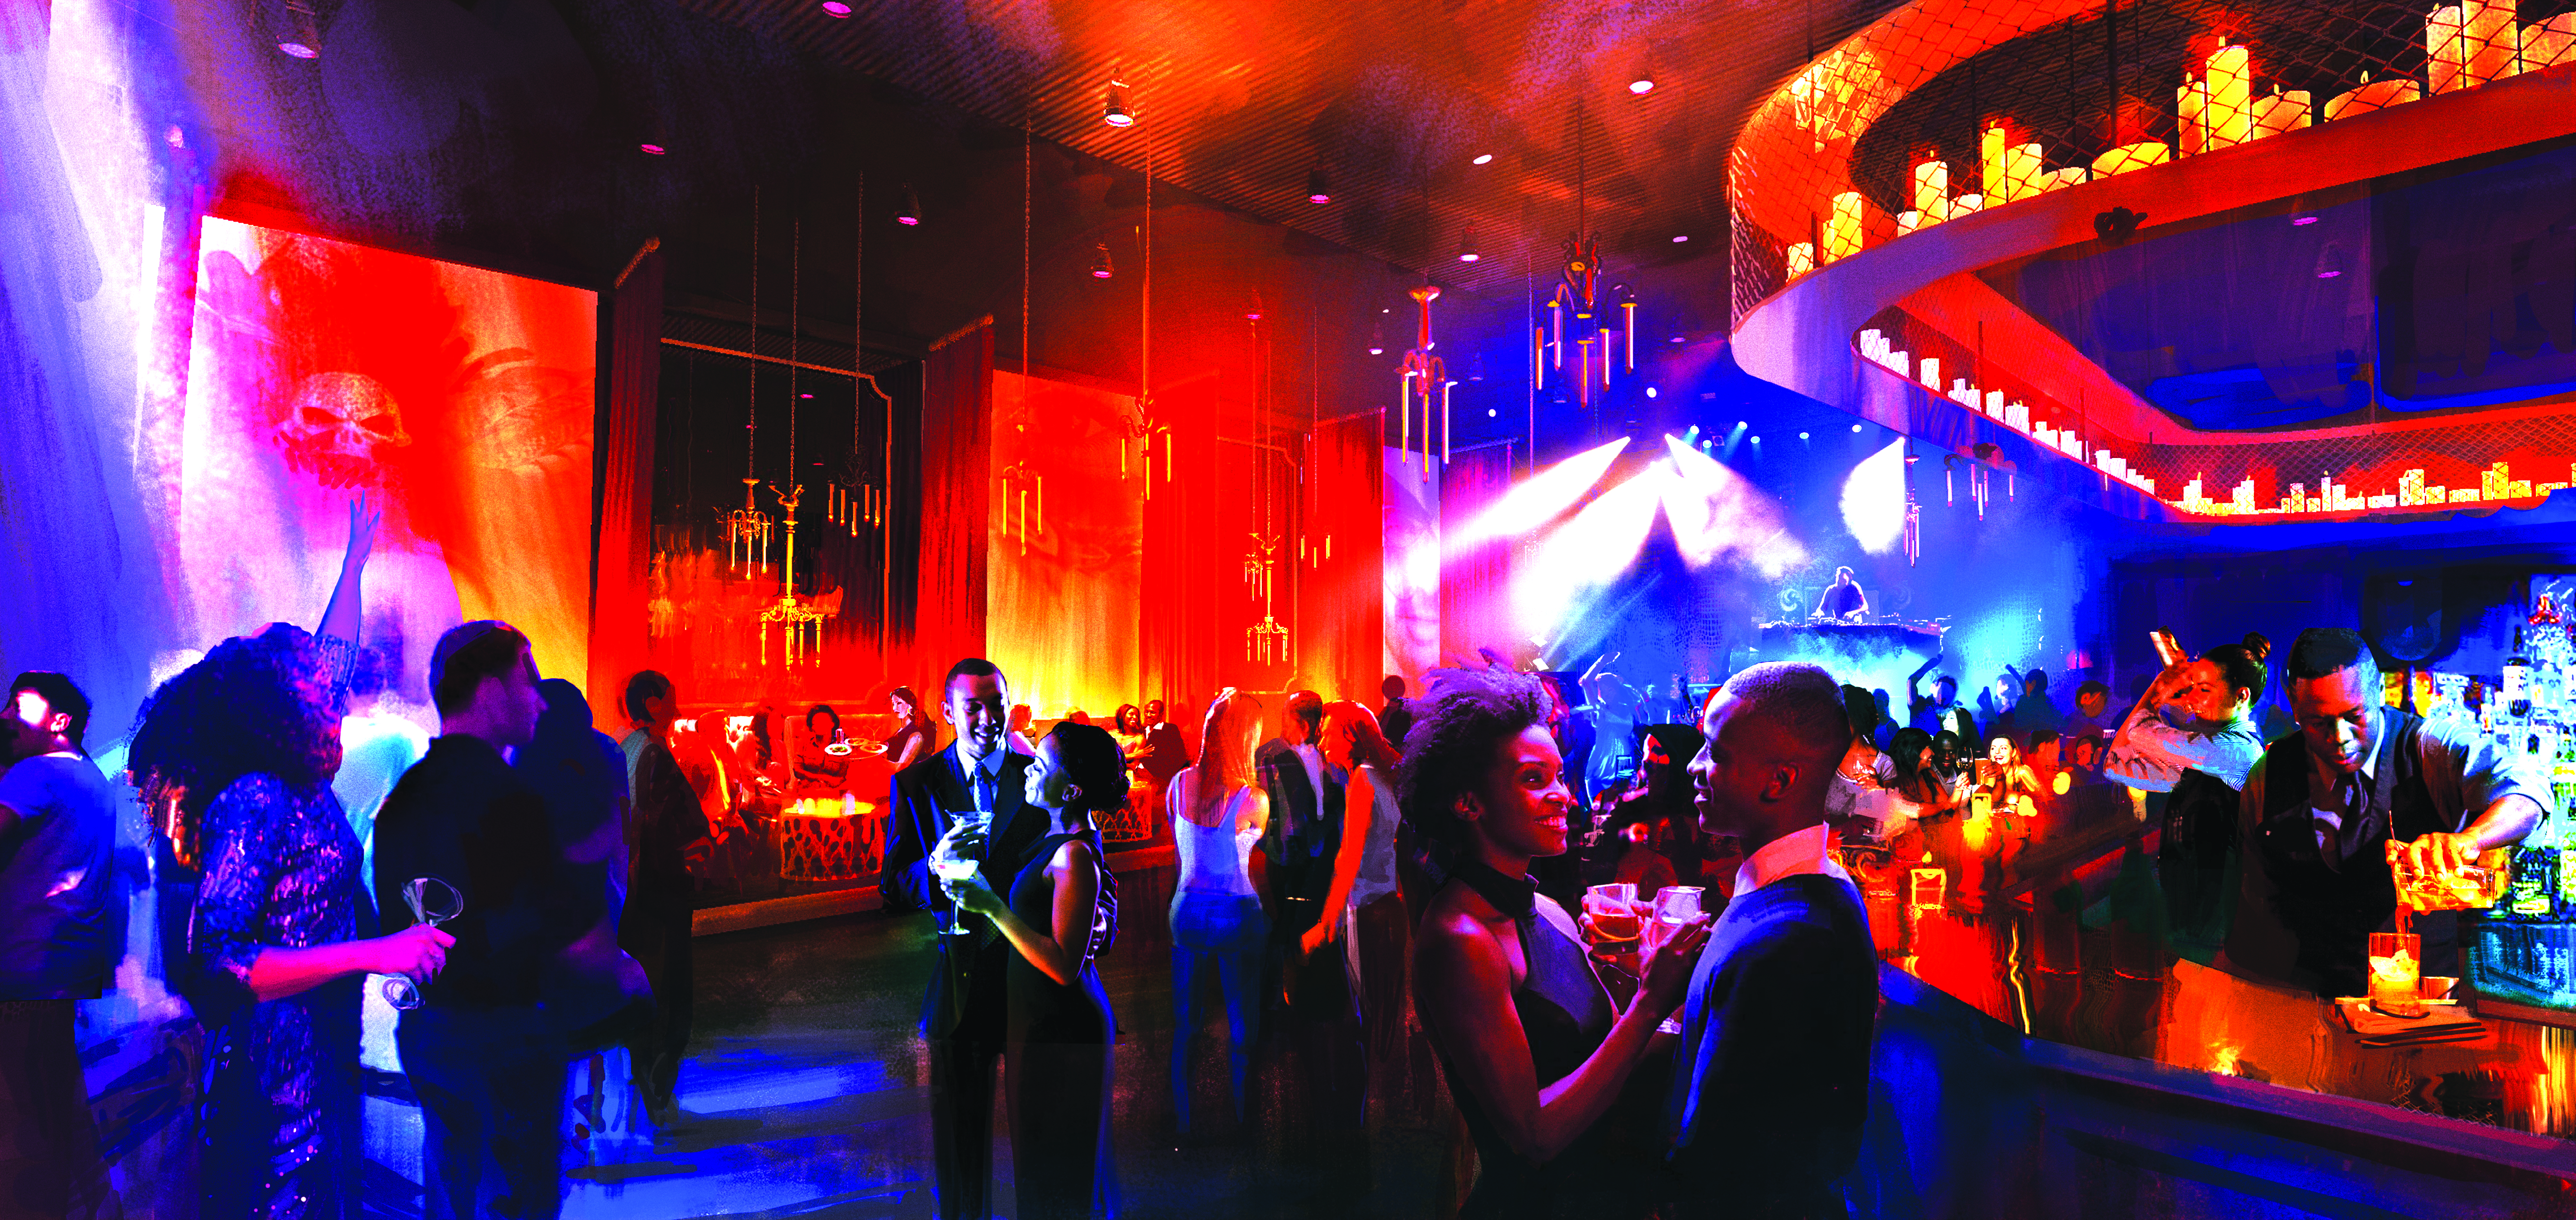 The Fillmore New Orleans: An Exciting New Music Venue Opening in Harrah's Casino